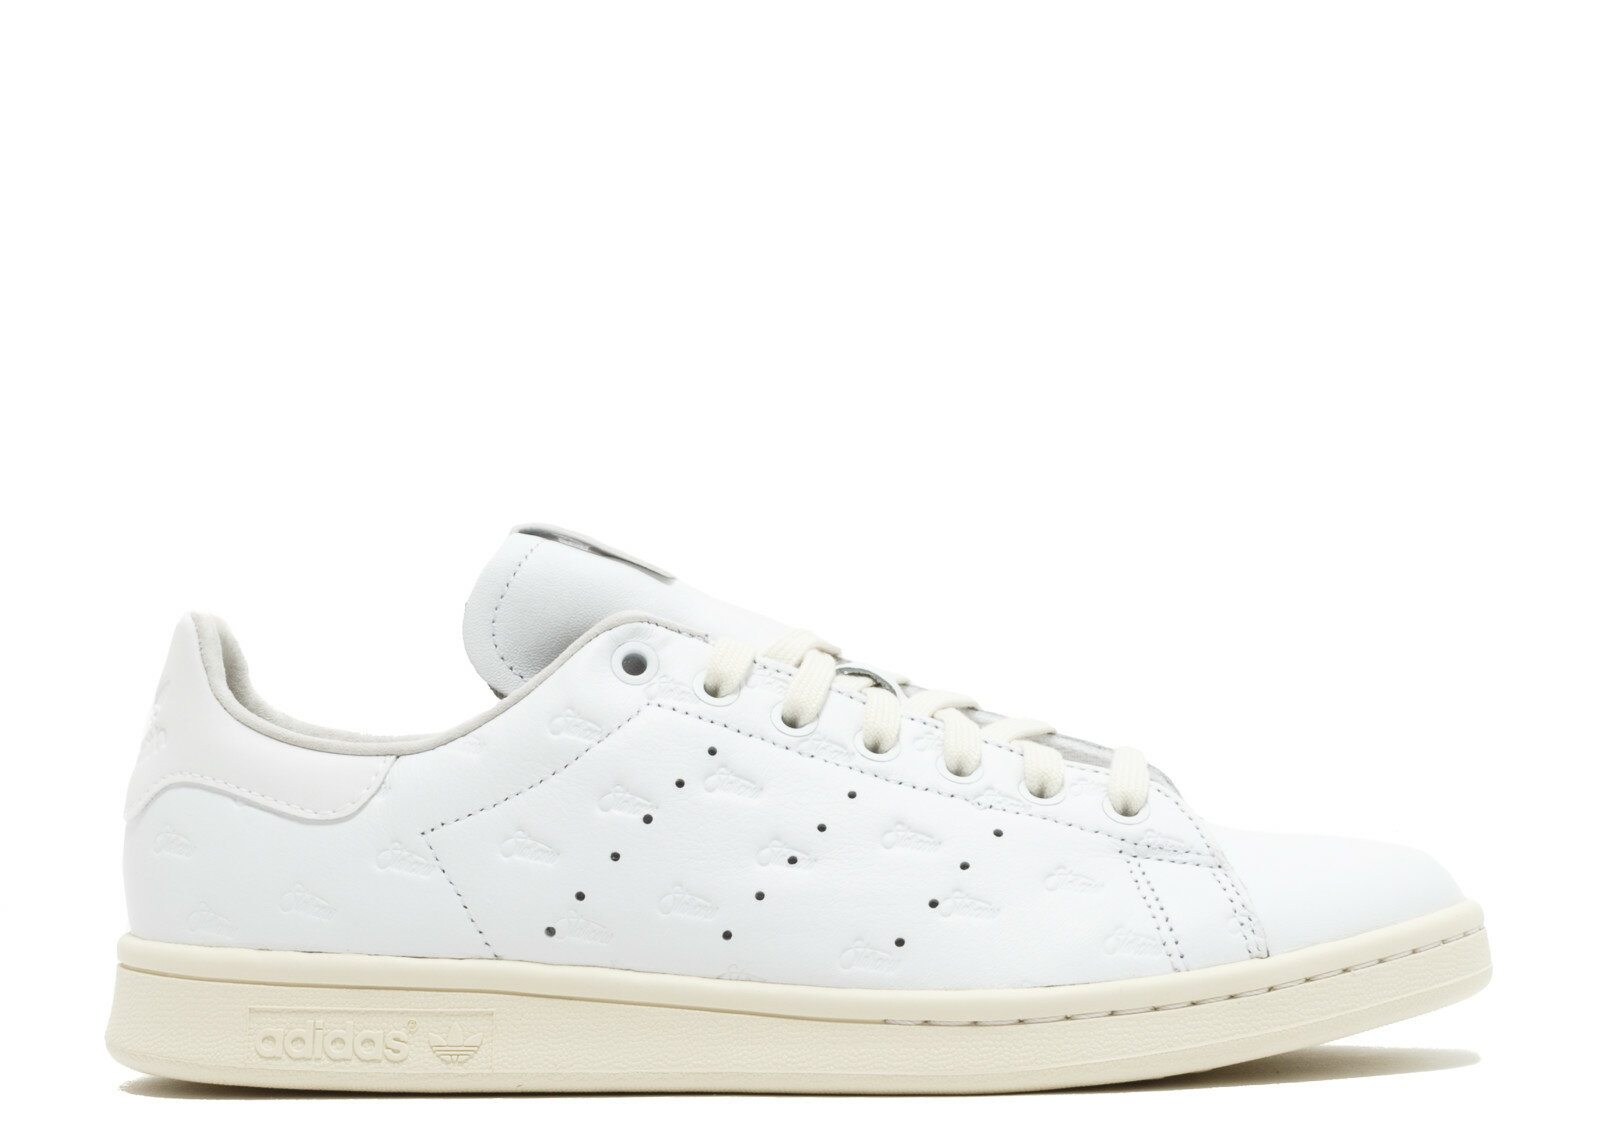 FOOTWEAR OTHER BRANDS STAN SMITH SE ALIFE X STARCROW S.E. エーライフ